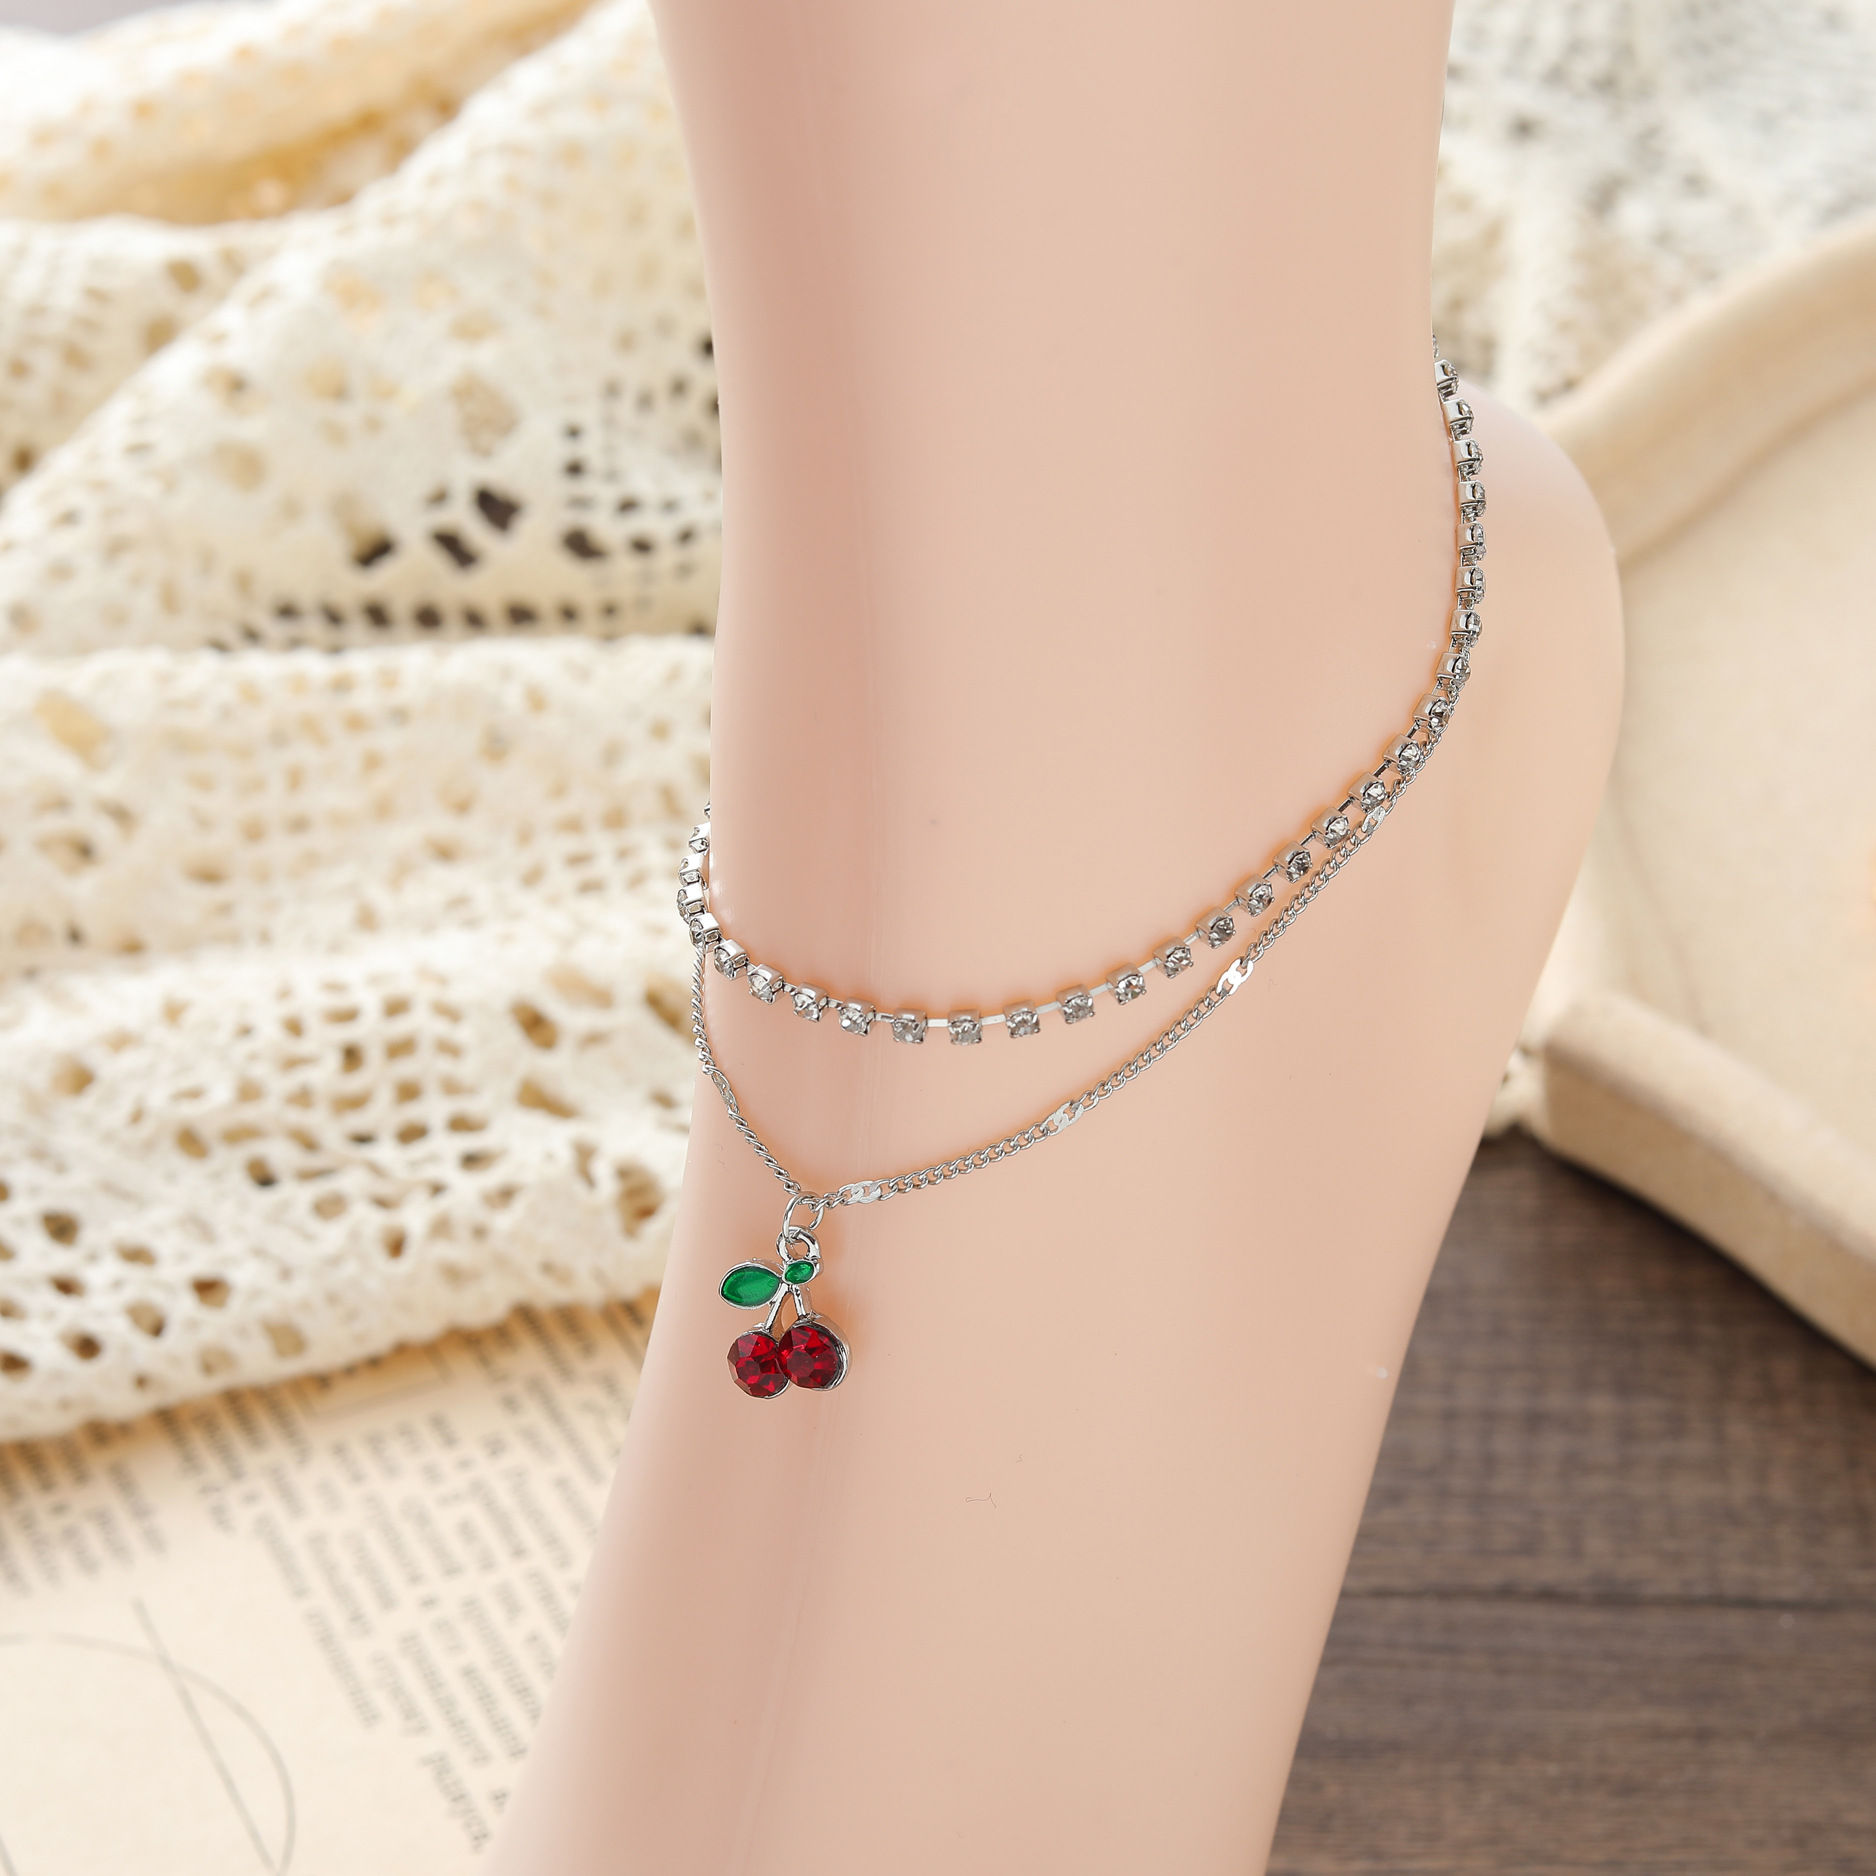 Elegant Silver Plated Artificial Diamond Cherry Pedant Anklet for Any Occasion Wear